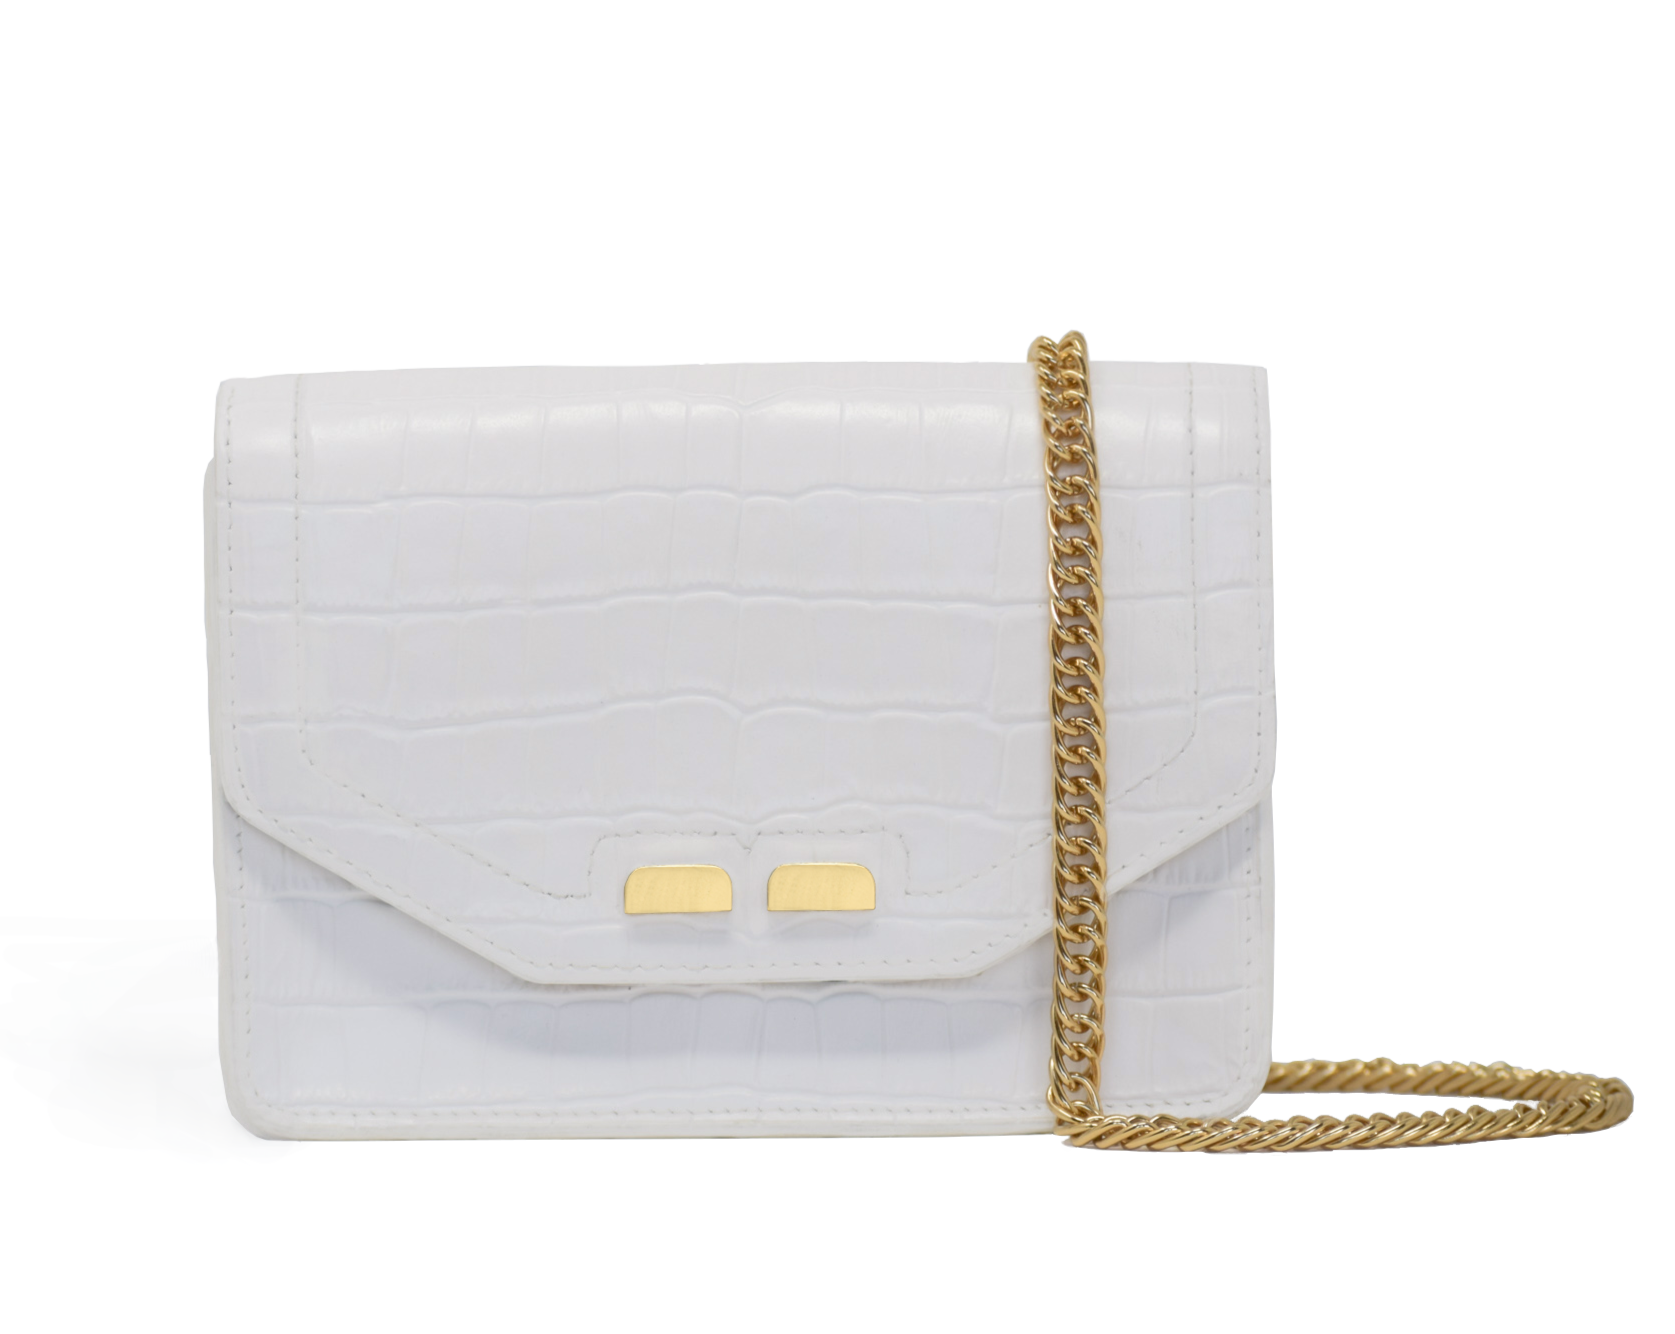 Samuel Stadium Bag in White Gator